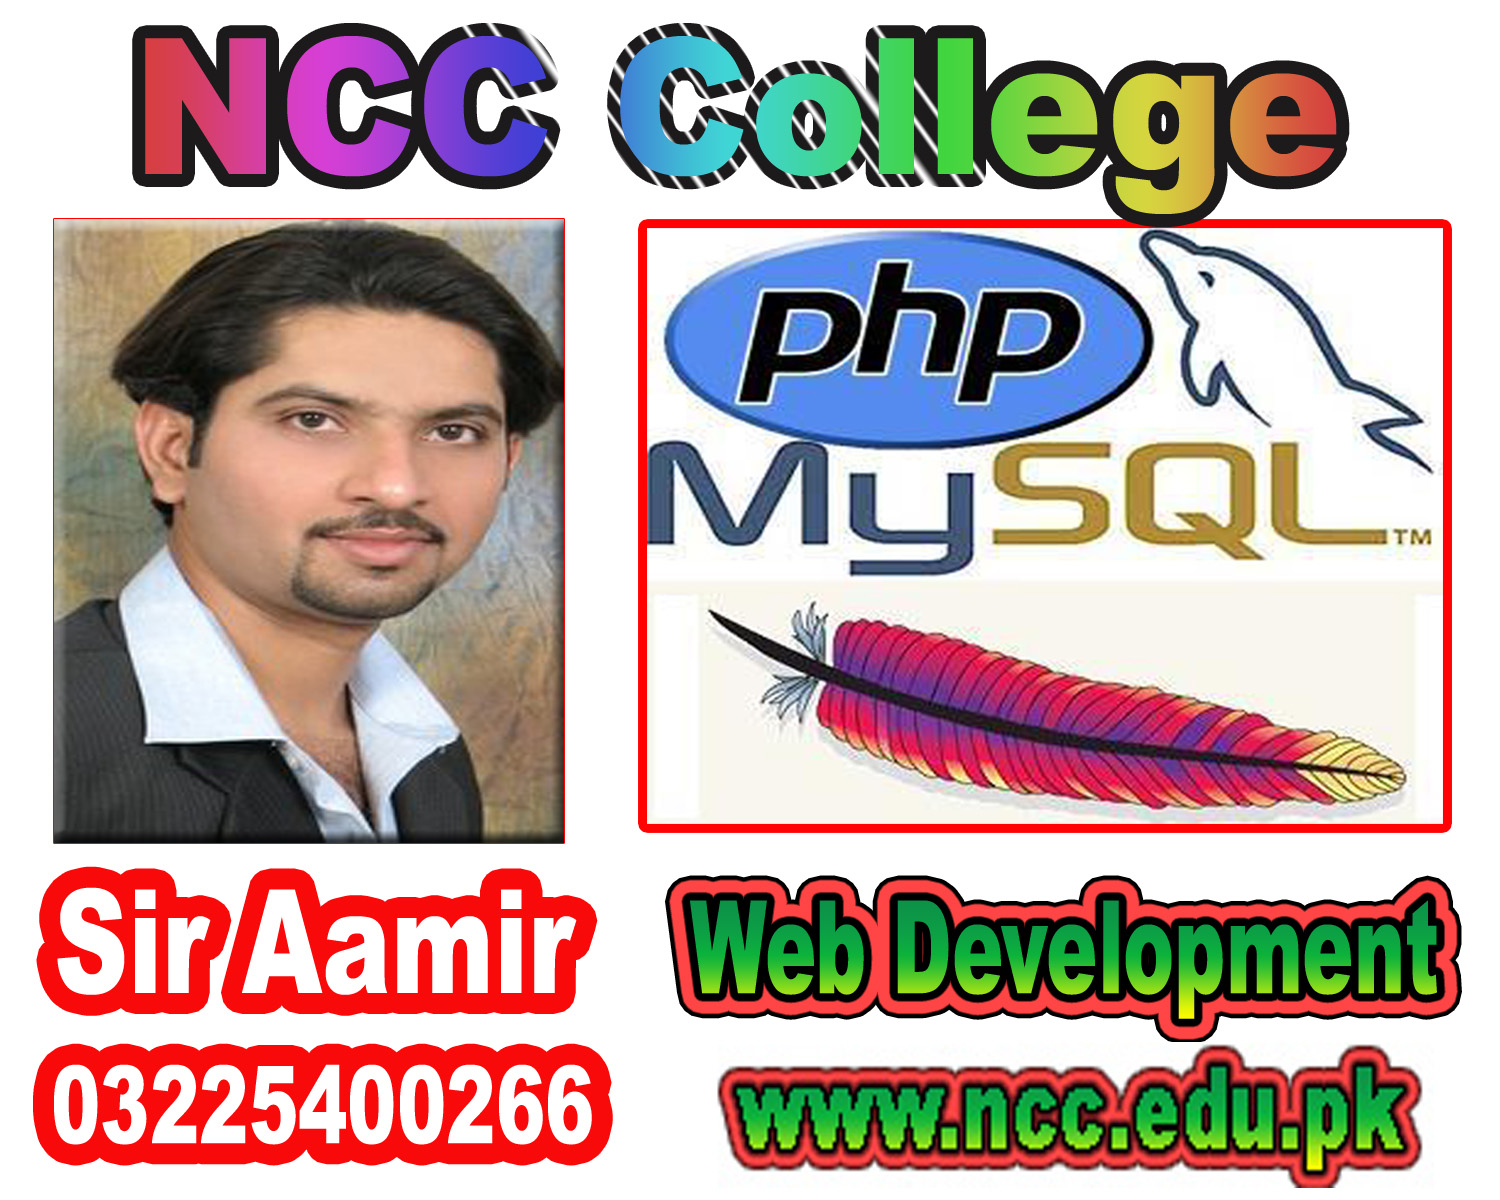 ncc-web-development